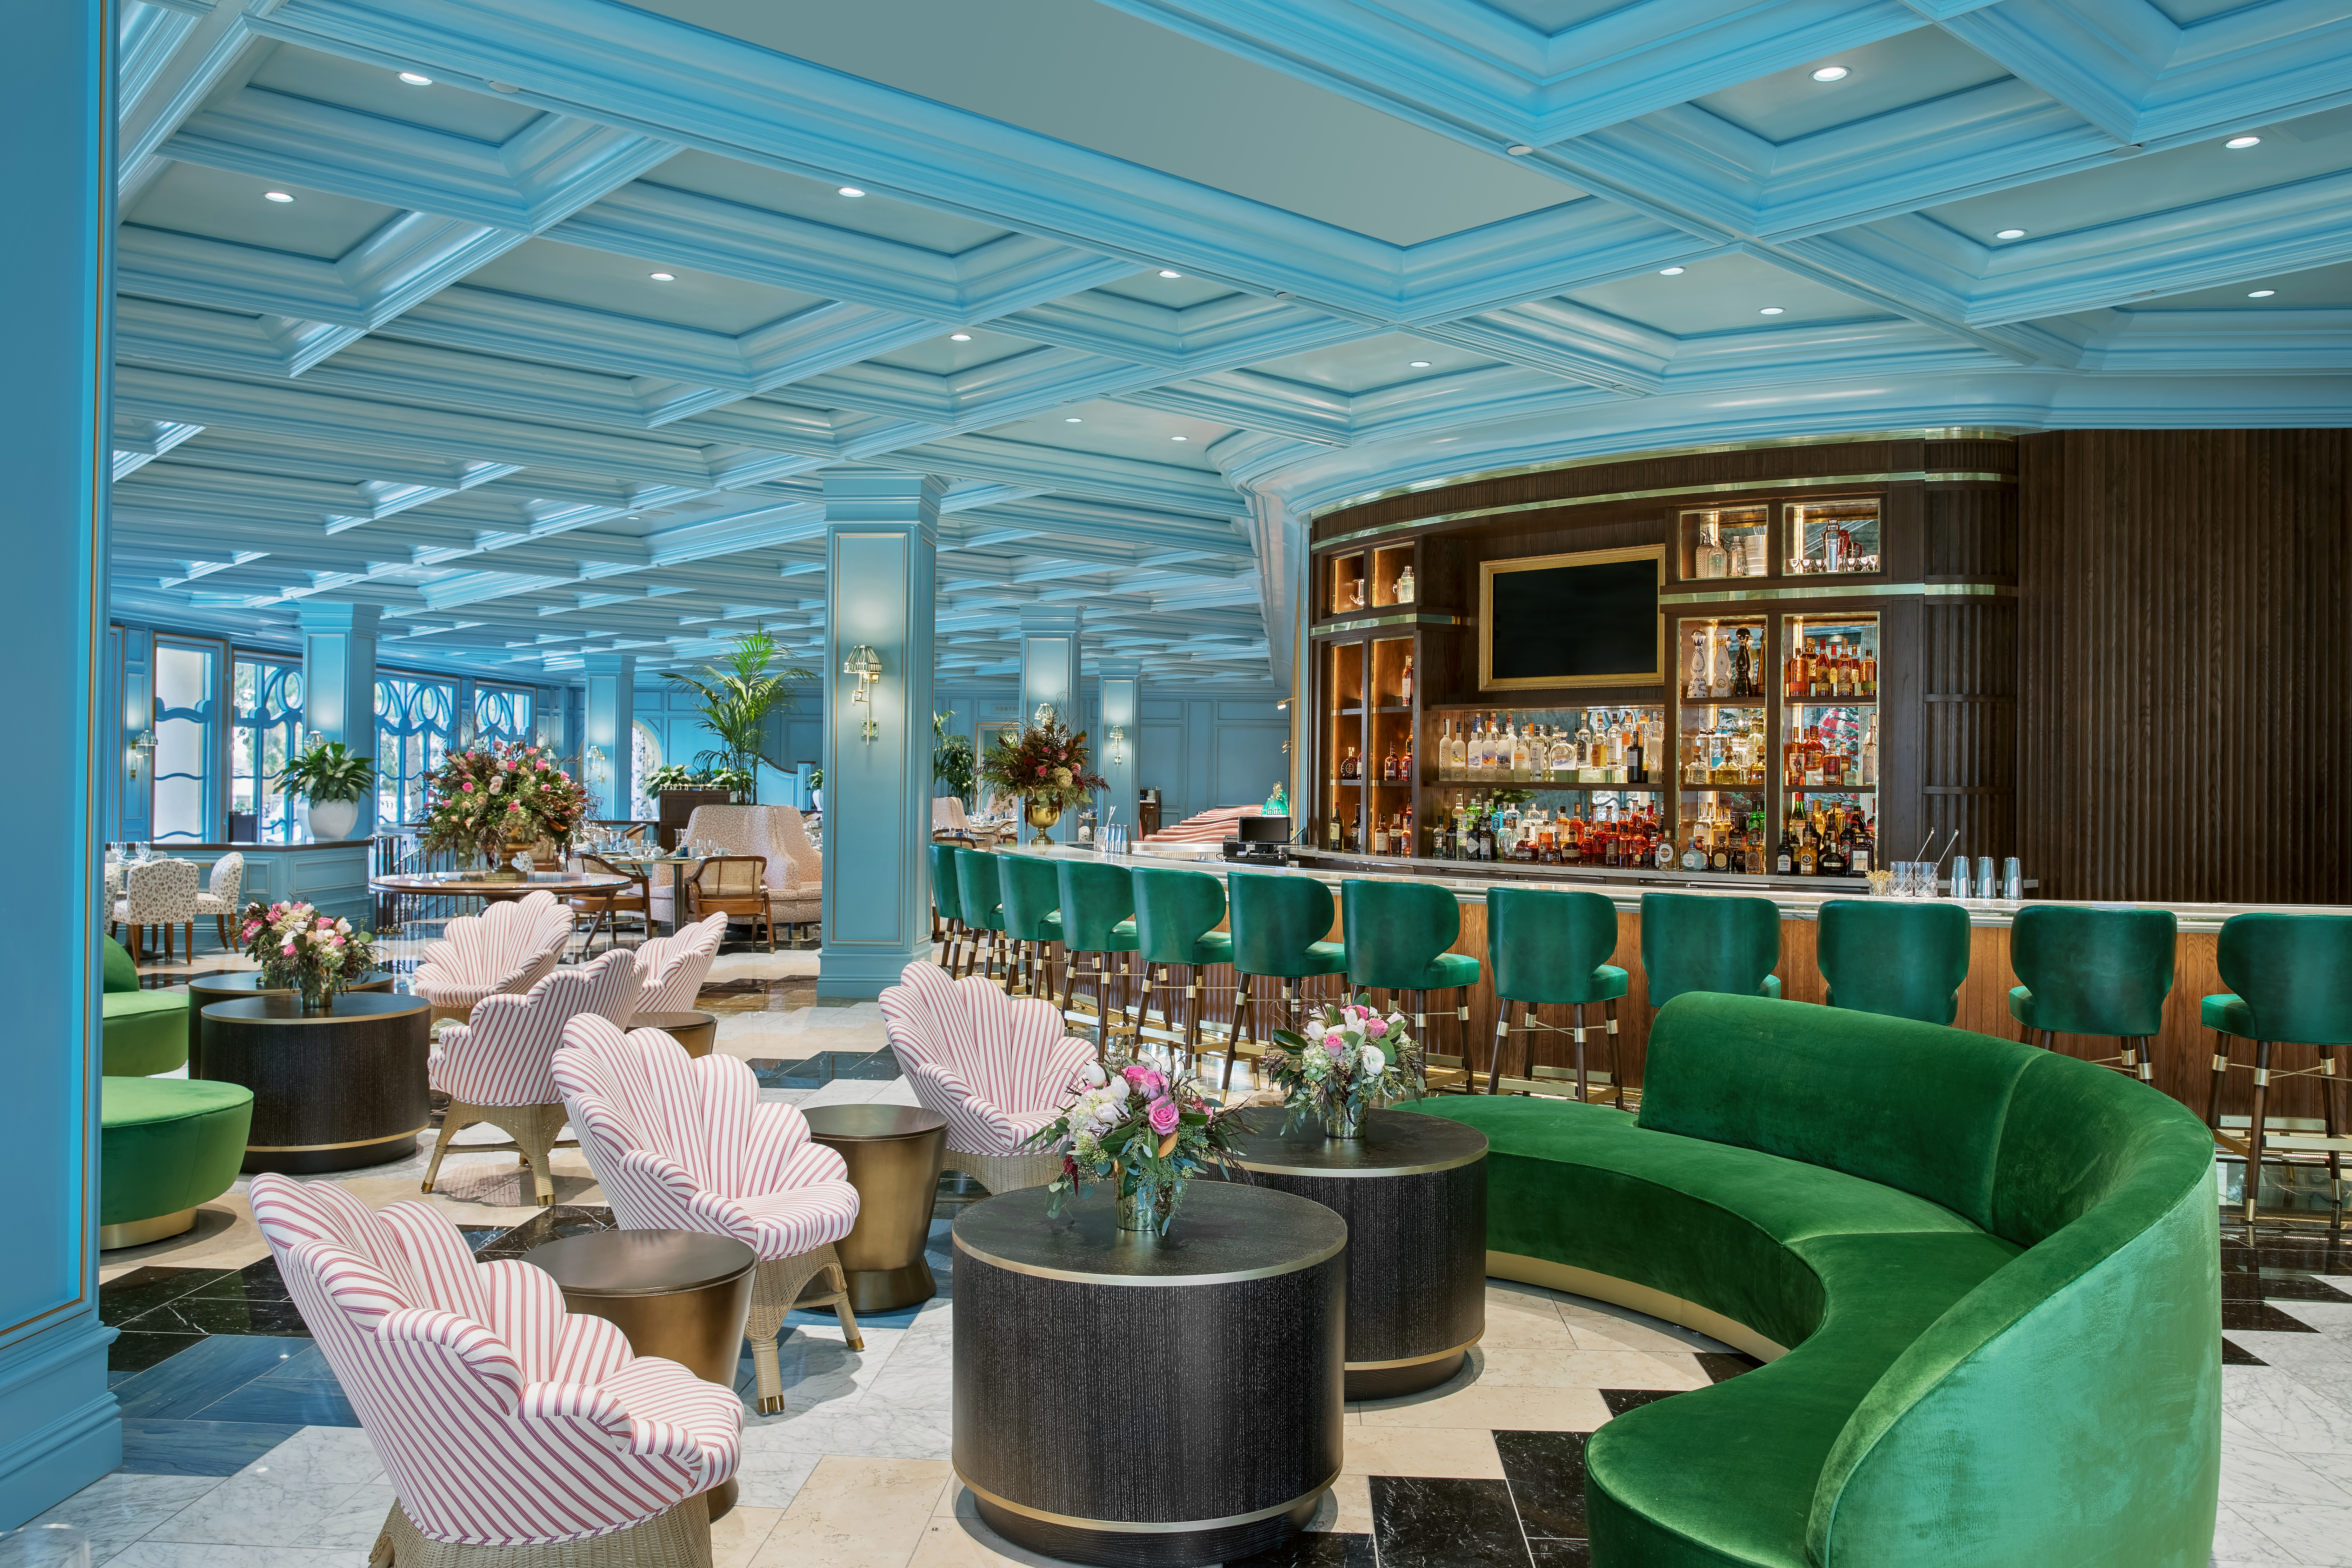 With playful design nods to old world traditions sadelles gives a bold new identity to restaurants in las vegas